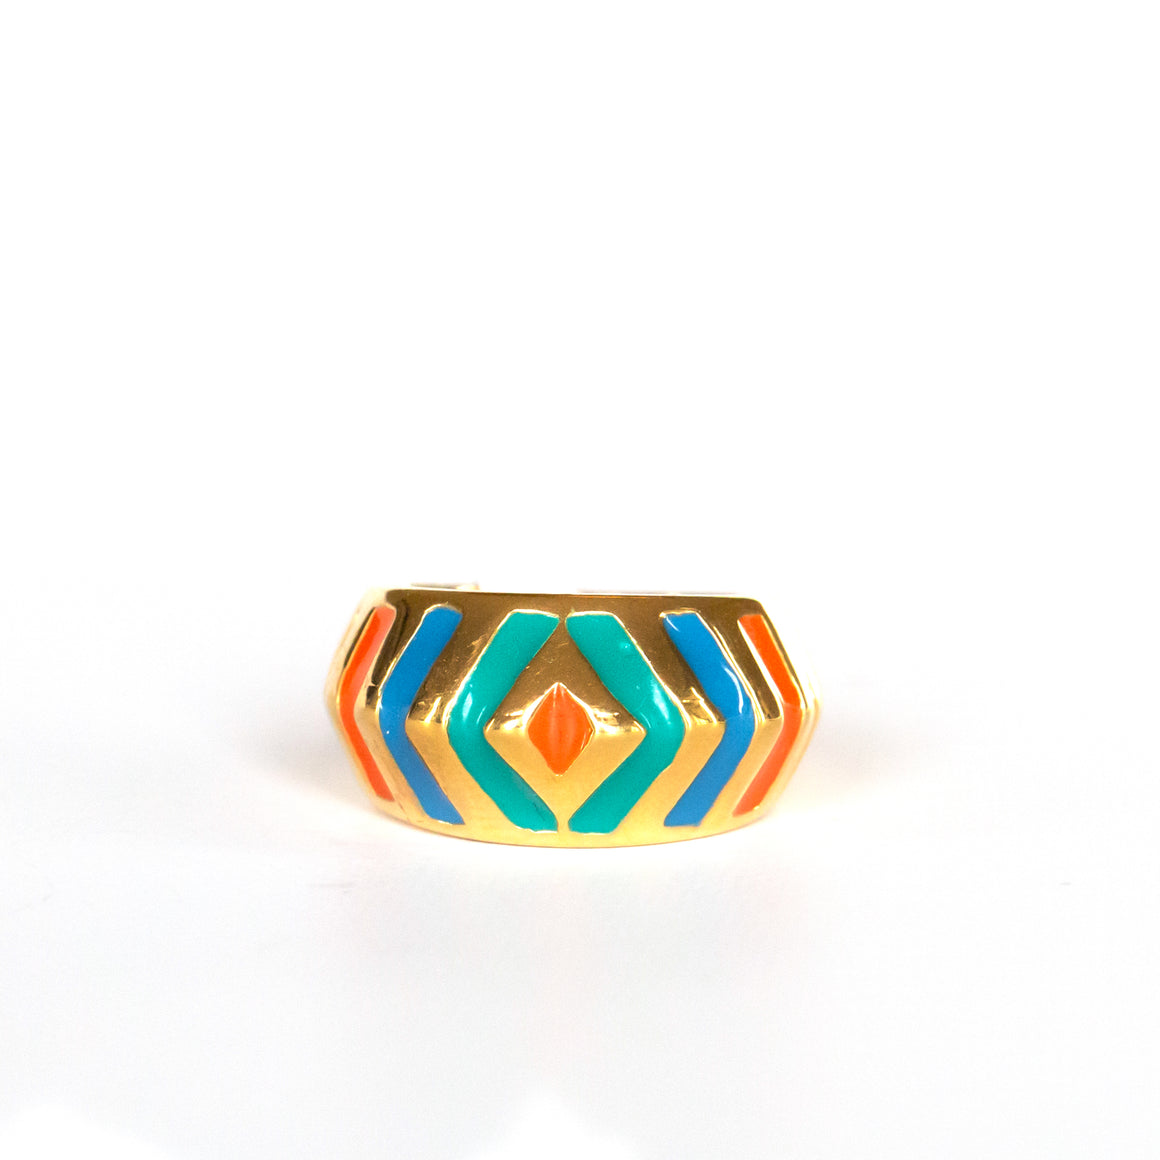 VINTAGE JEWELRY | GOLD-TONE PASTEL RING (SIZE 7)